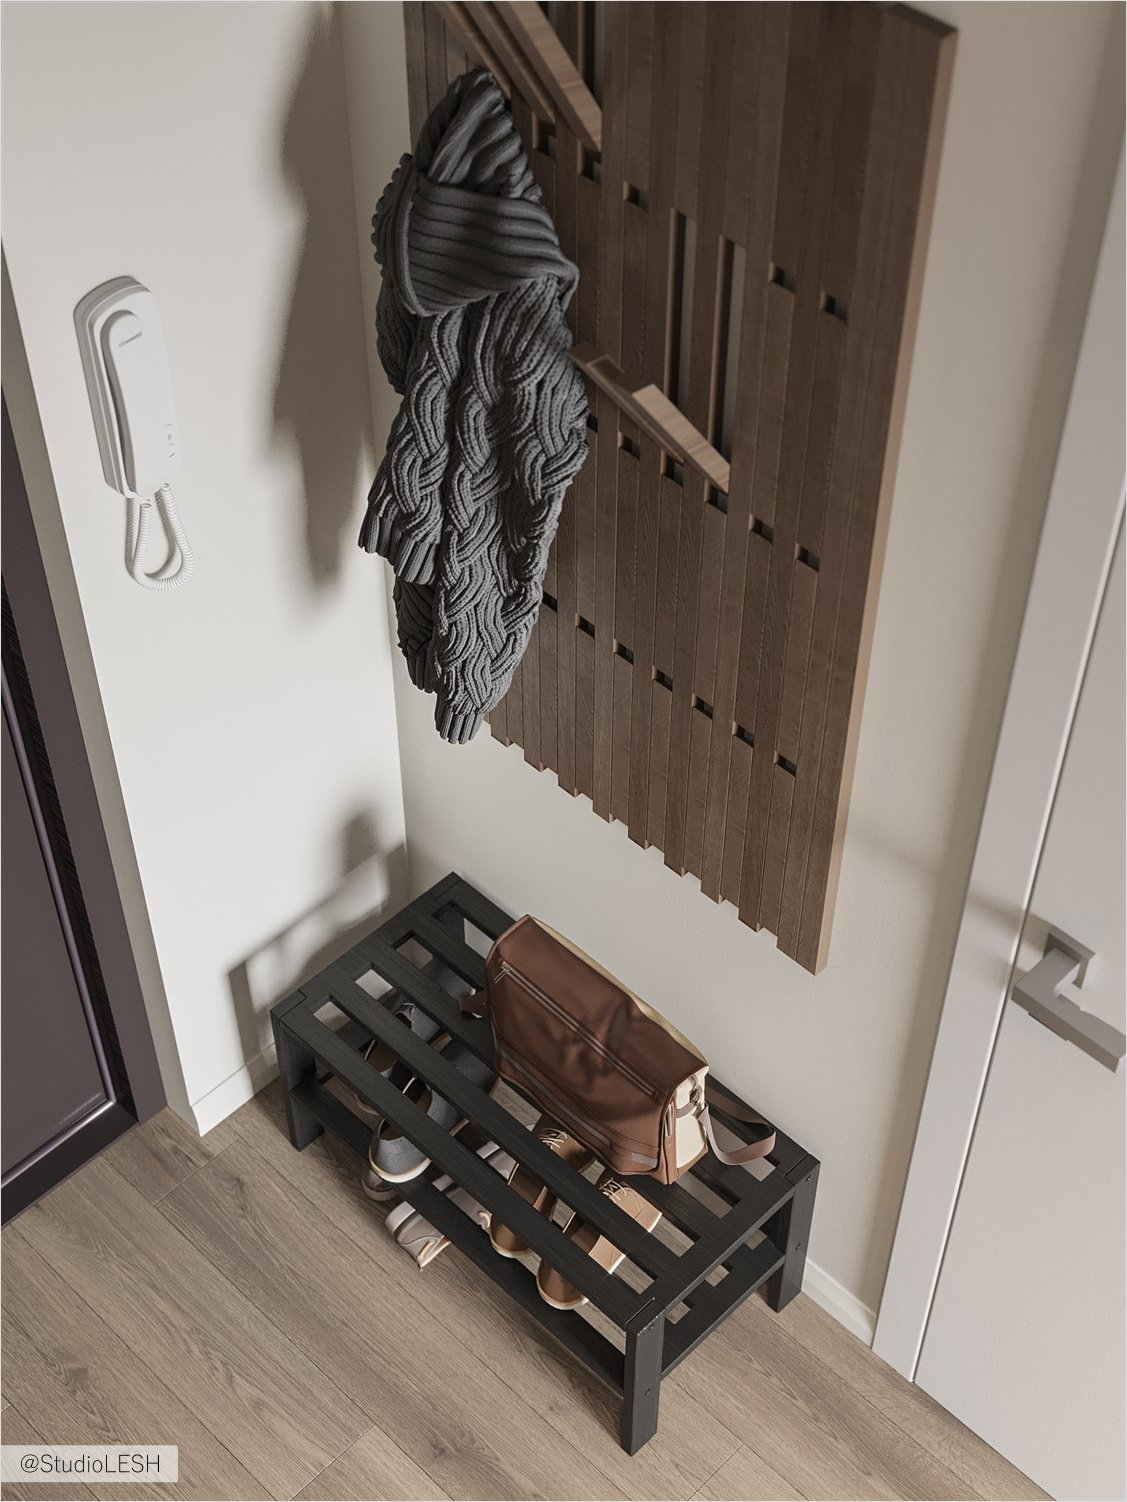 Wooden coat rack in the hallway